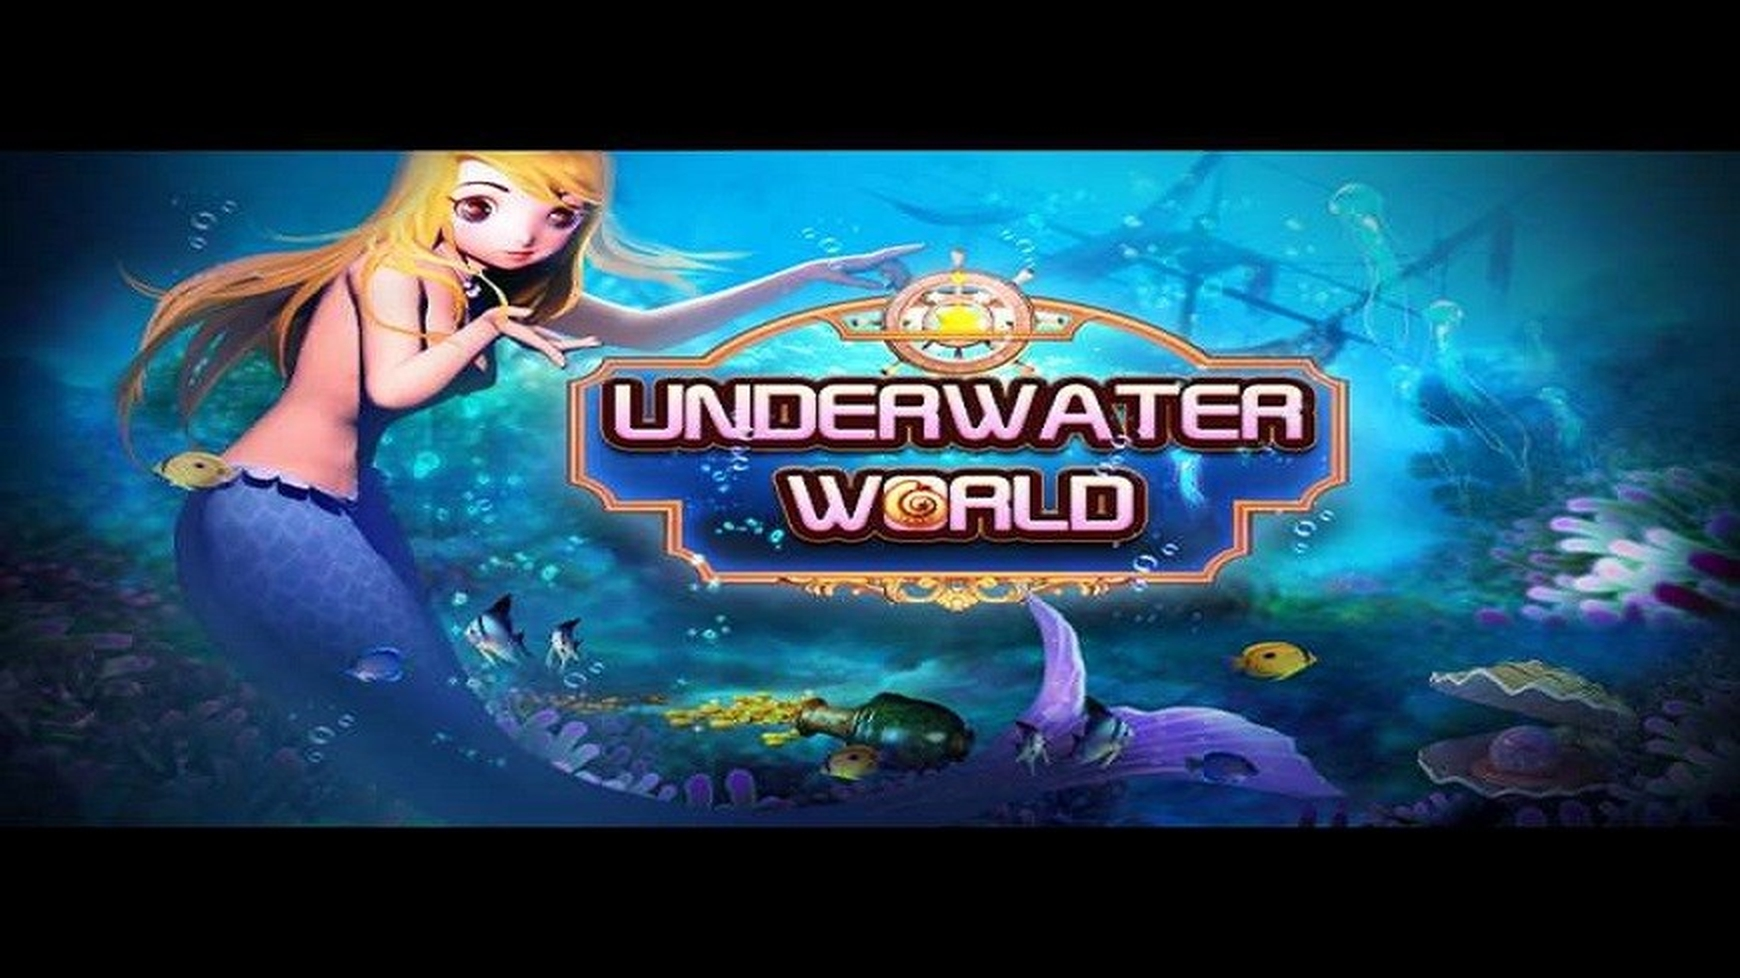 The Underwater World Online Slot Demo Game by Gameplay Interactive